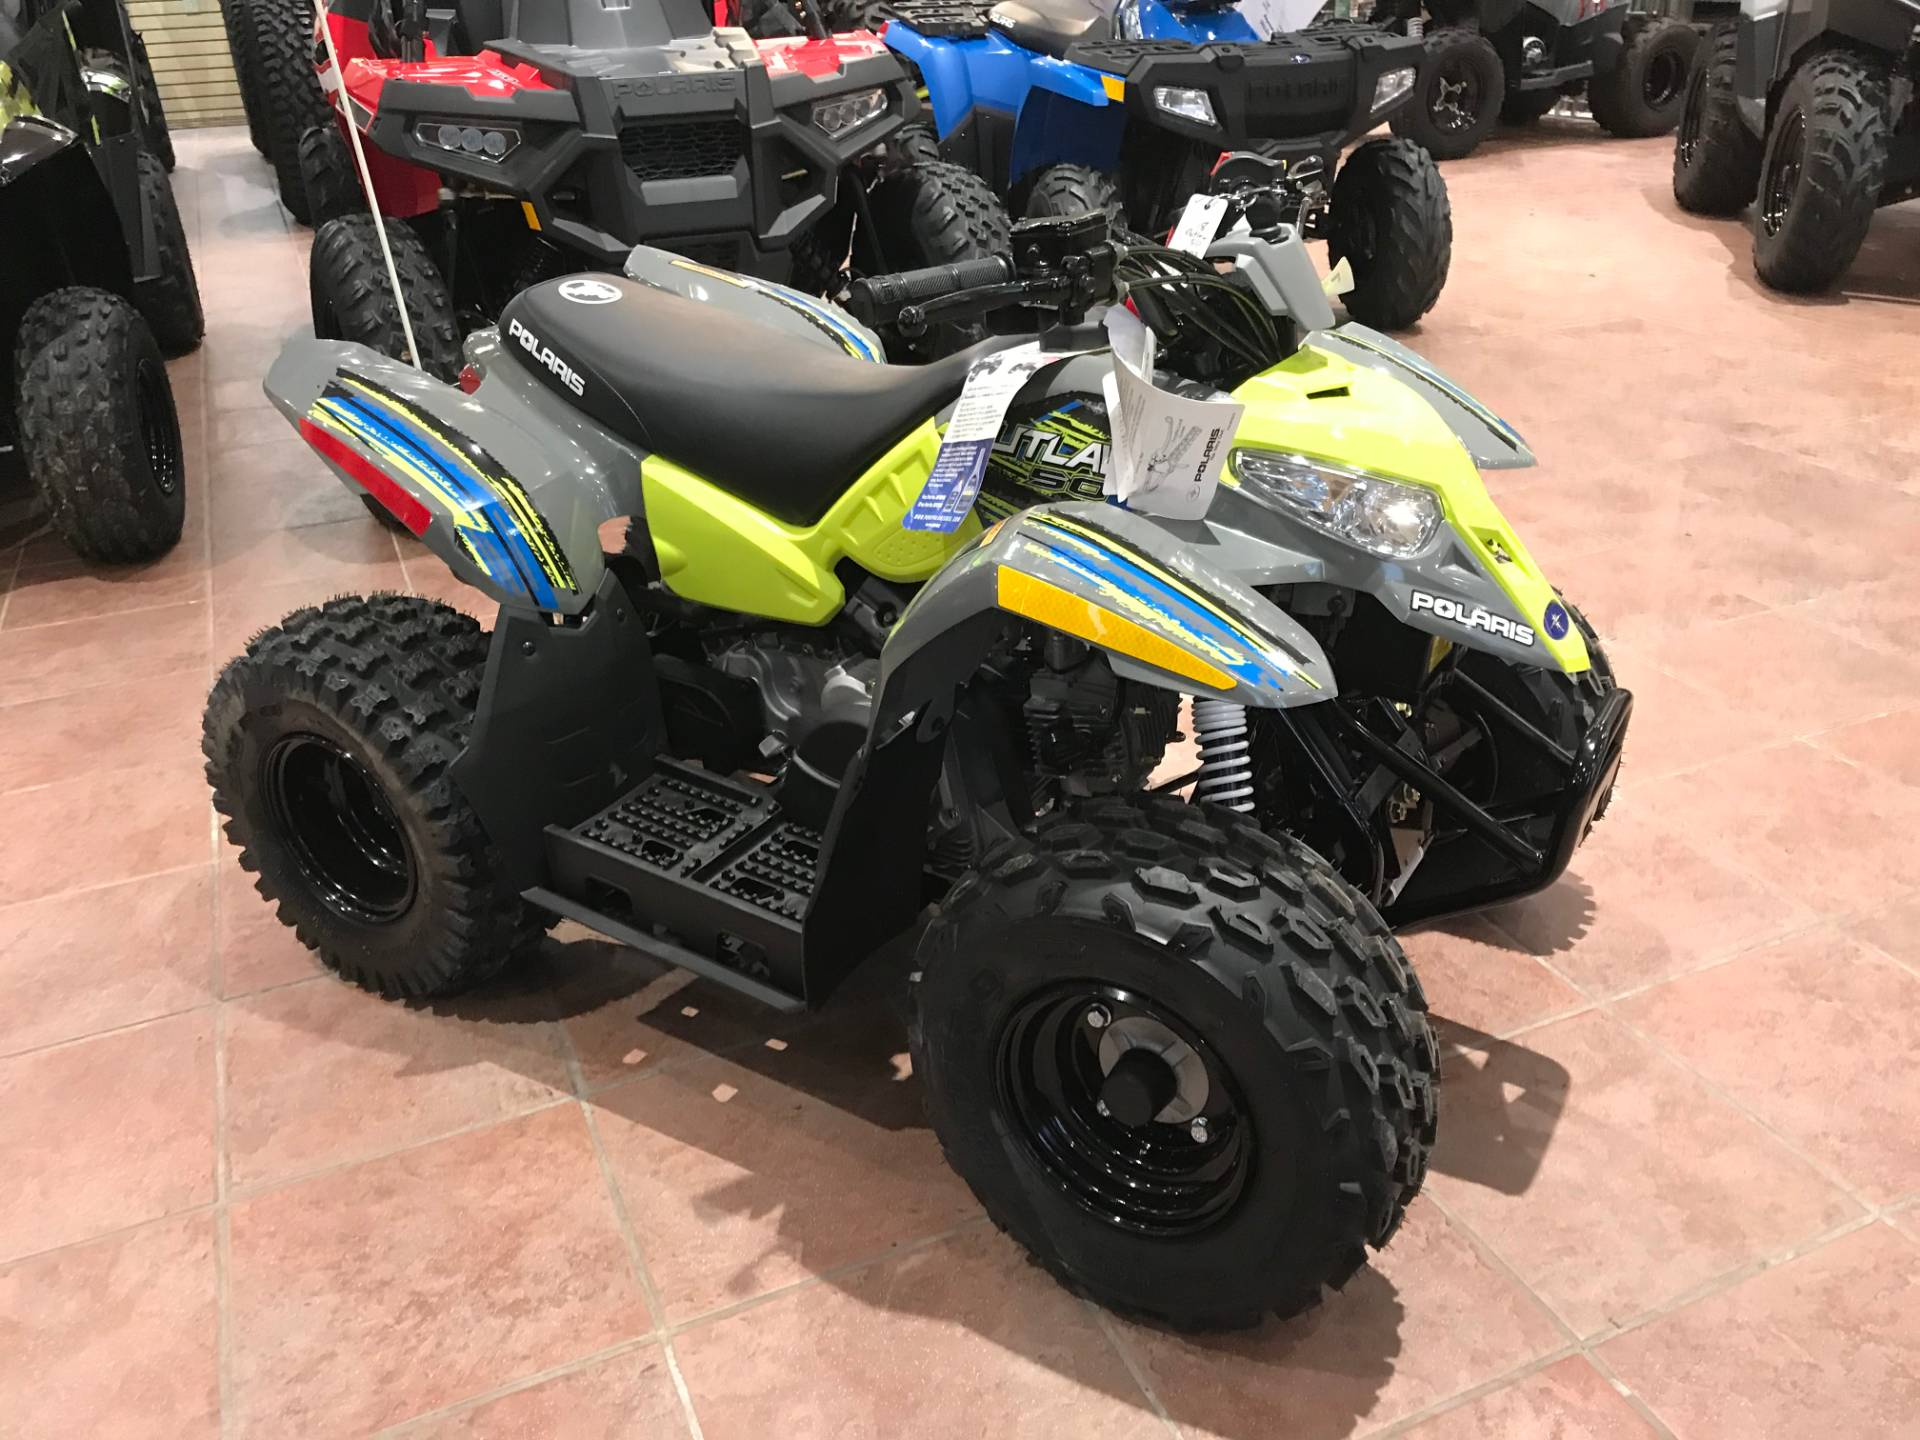 2019 Polaris Outlaw 50 in Chicora, Pennsylvania - Photo 1